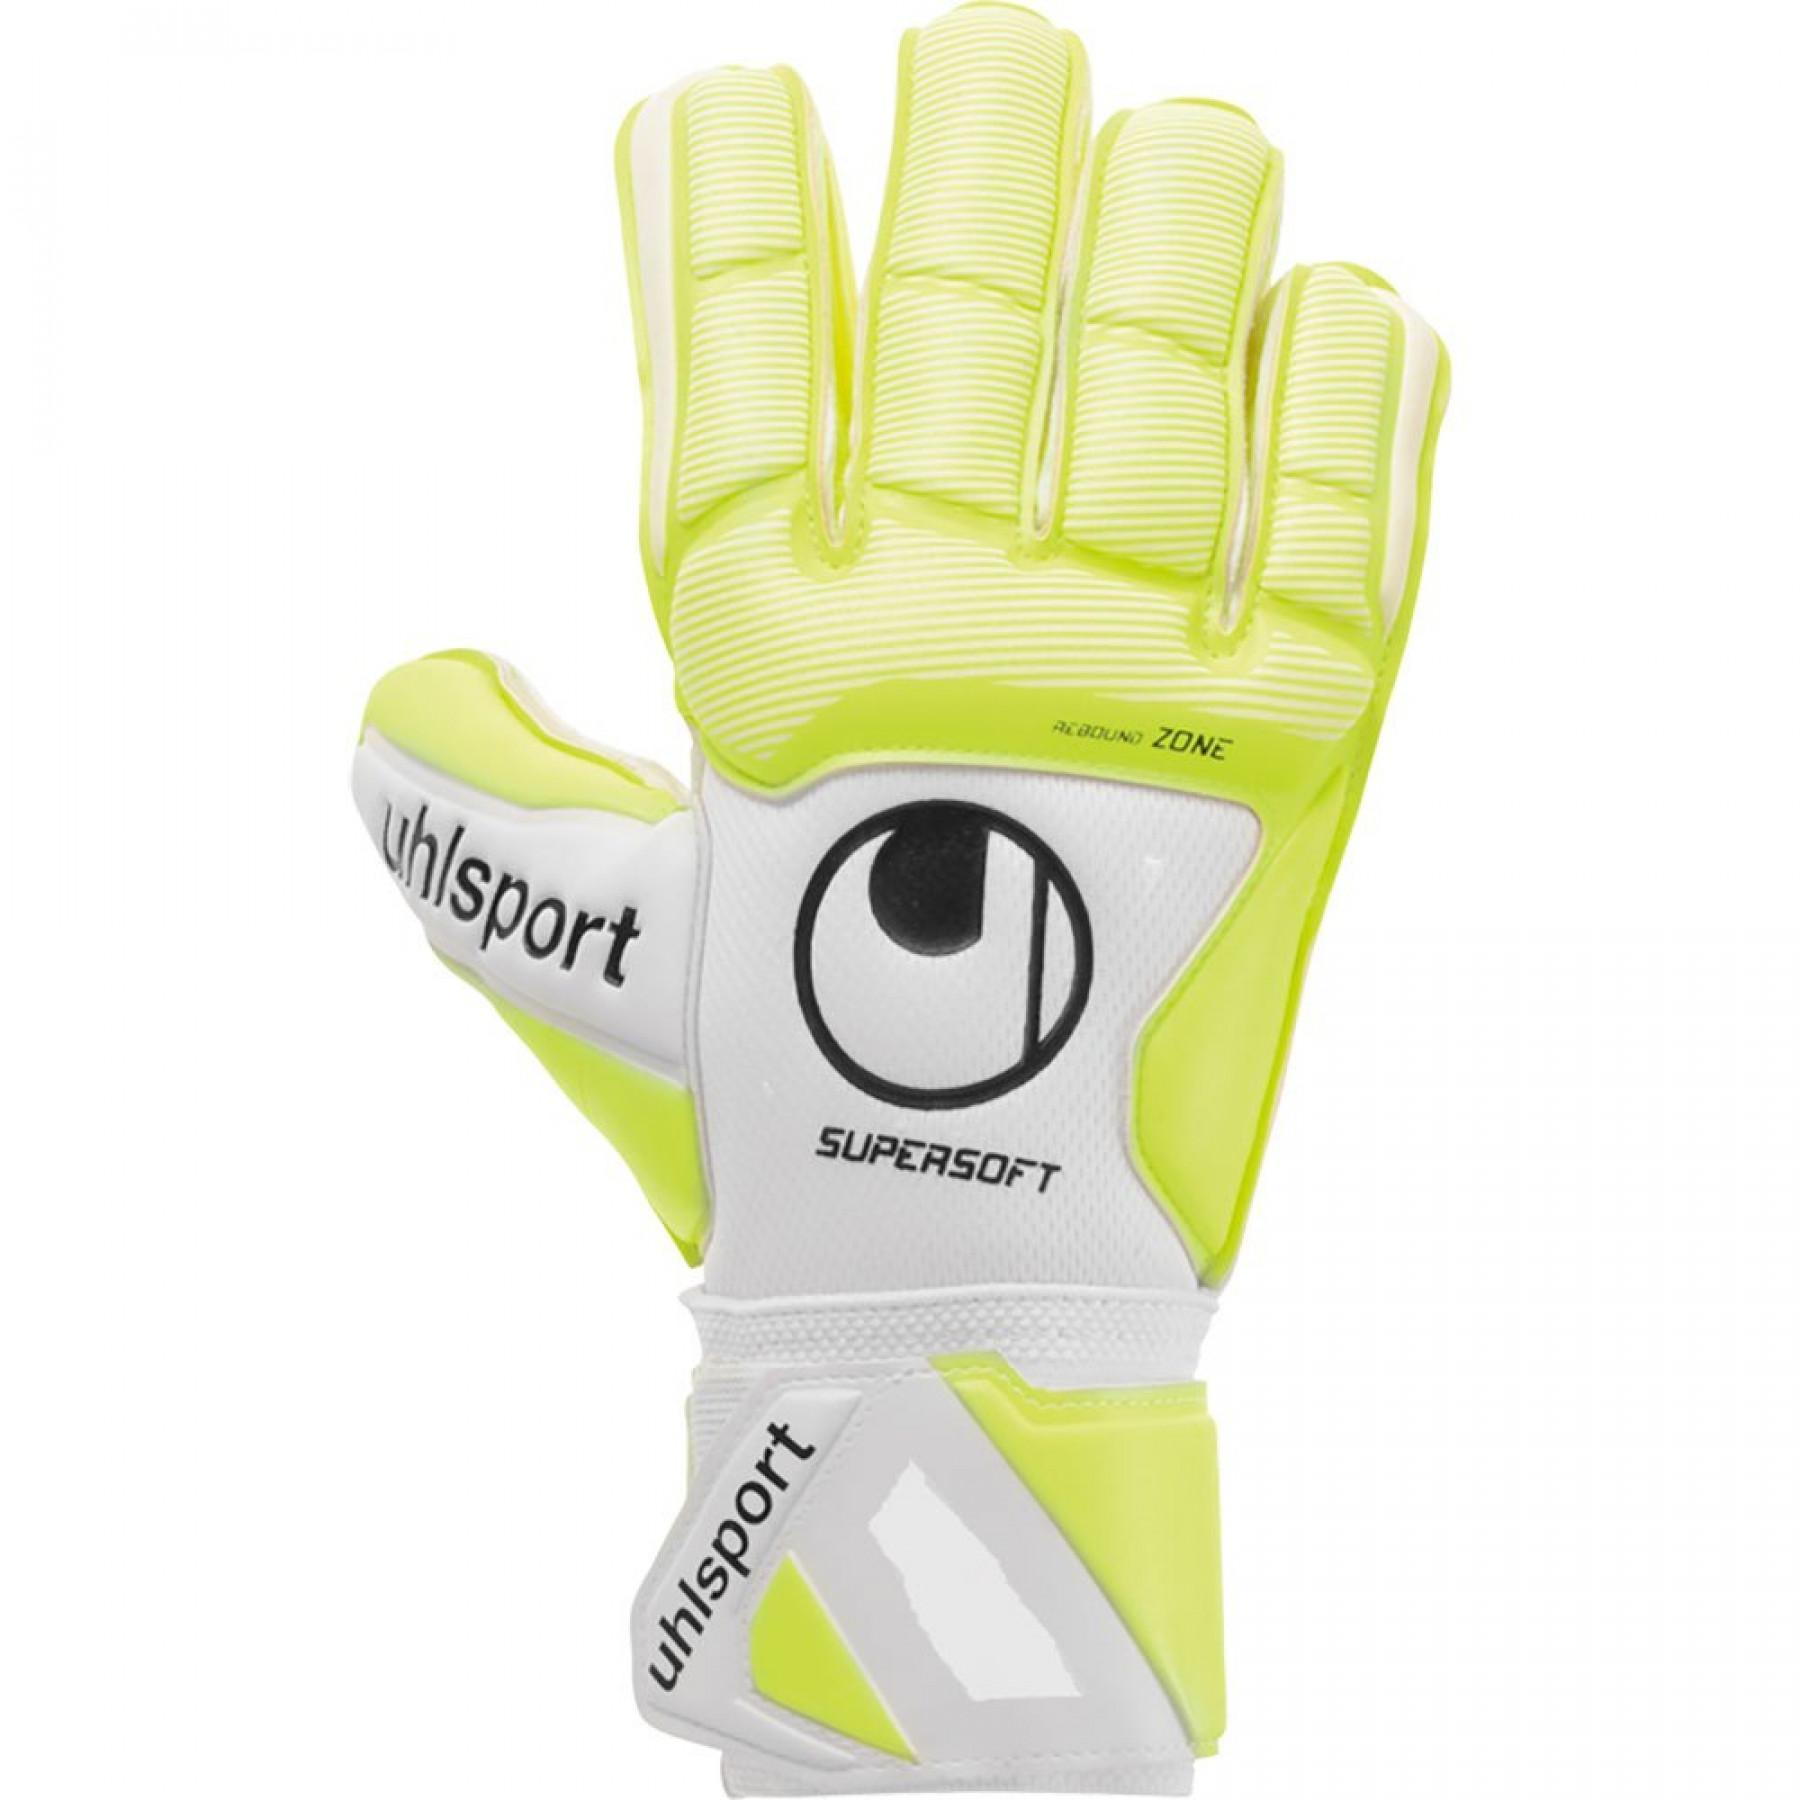 Uhlsport Pure Alliance Supersoft-Handschuhe